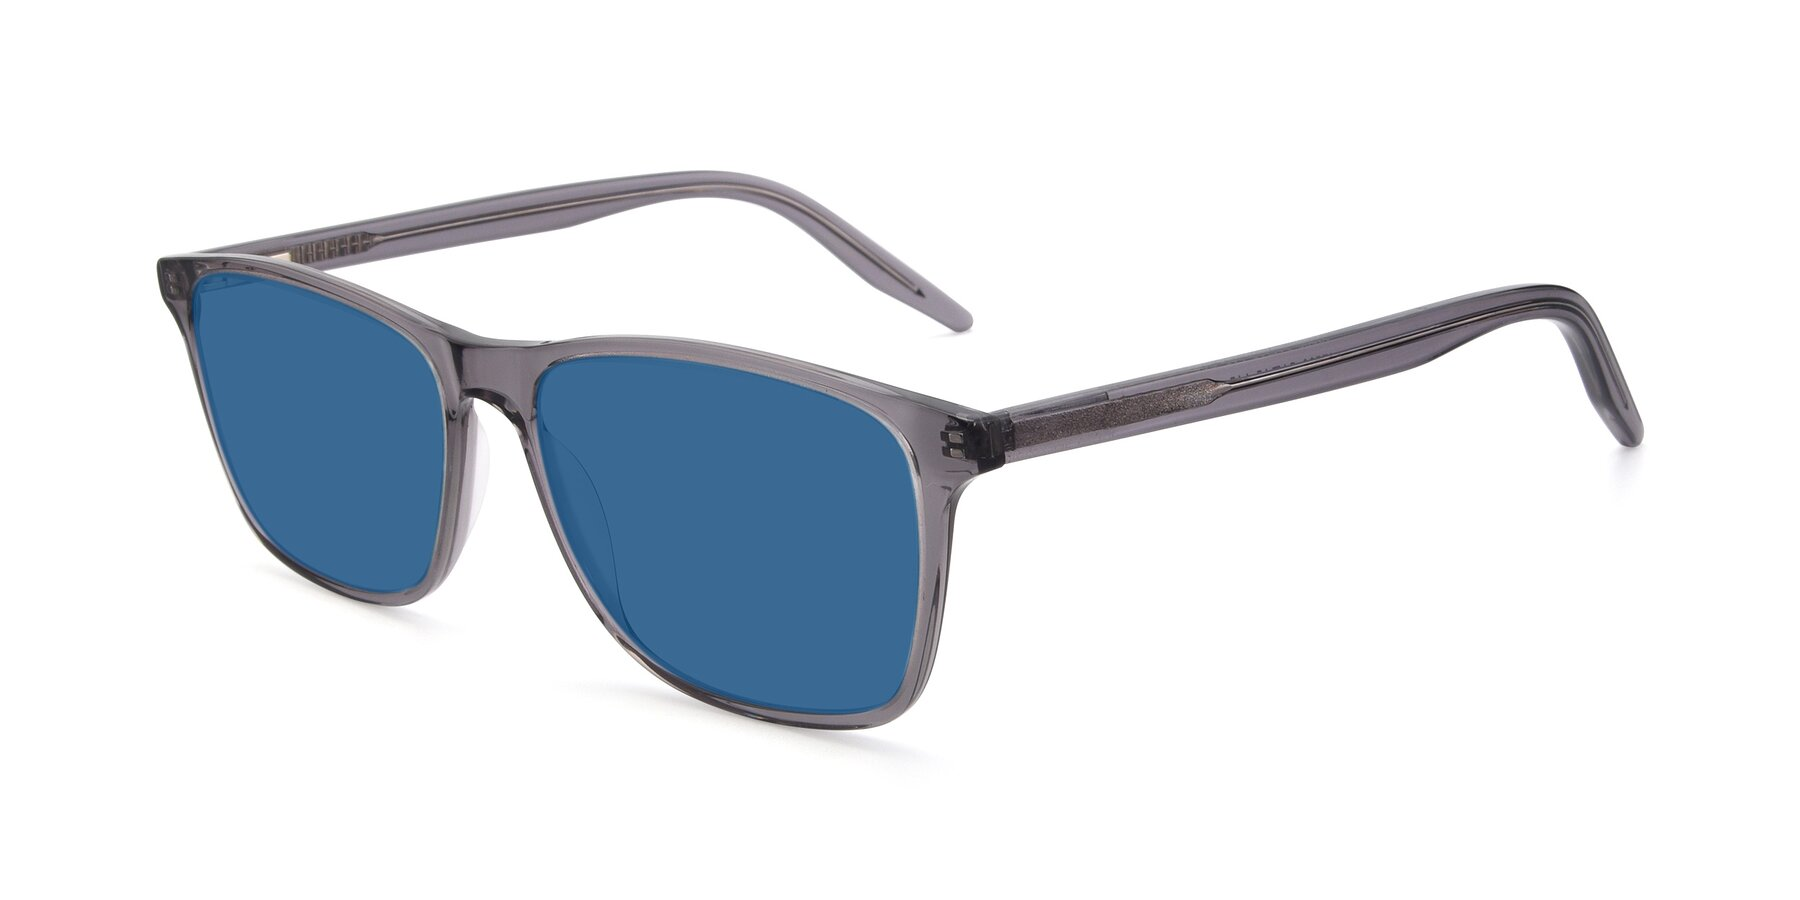 Angle of 17500 in Transparent Grey with Blue Tinted Lenses